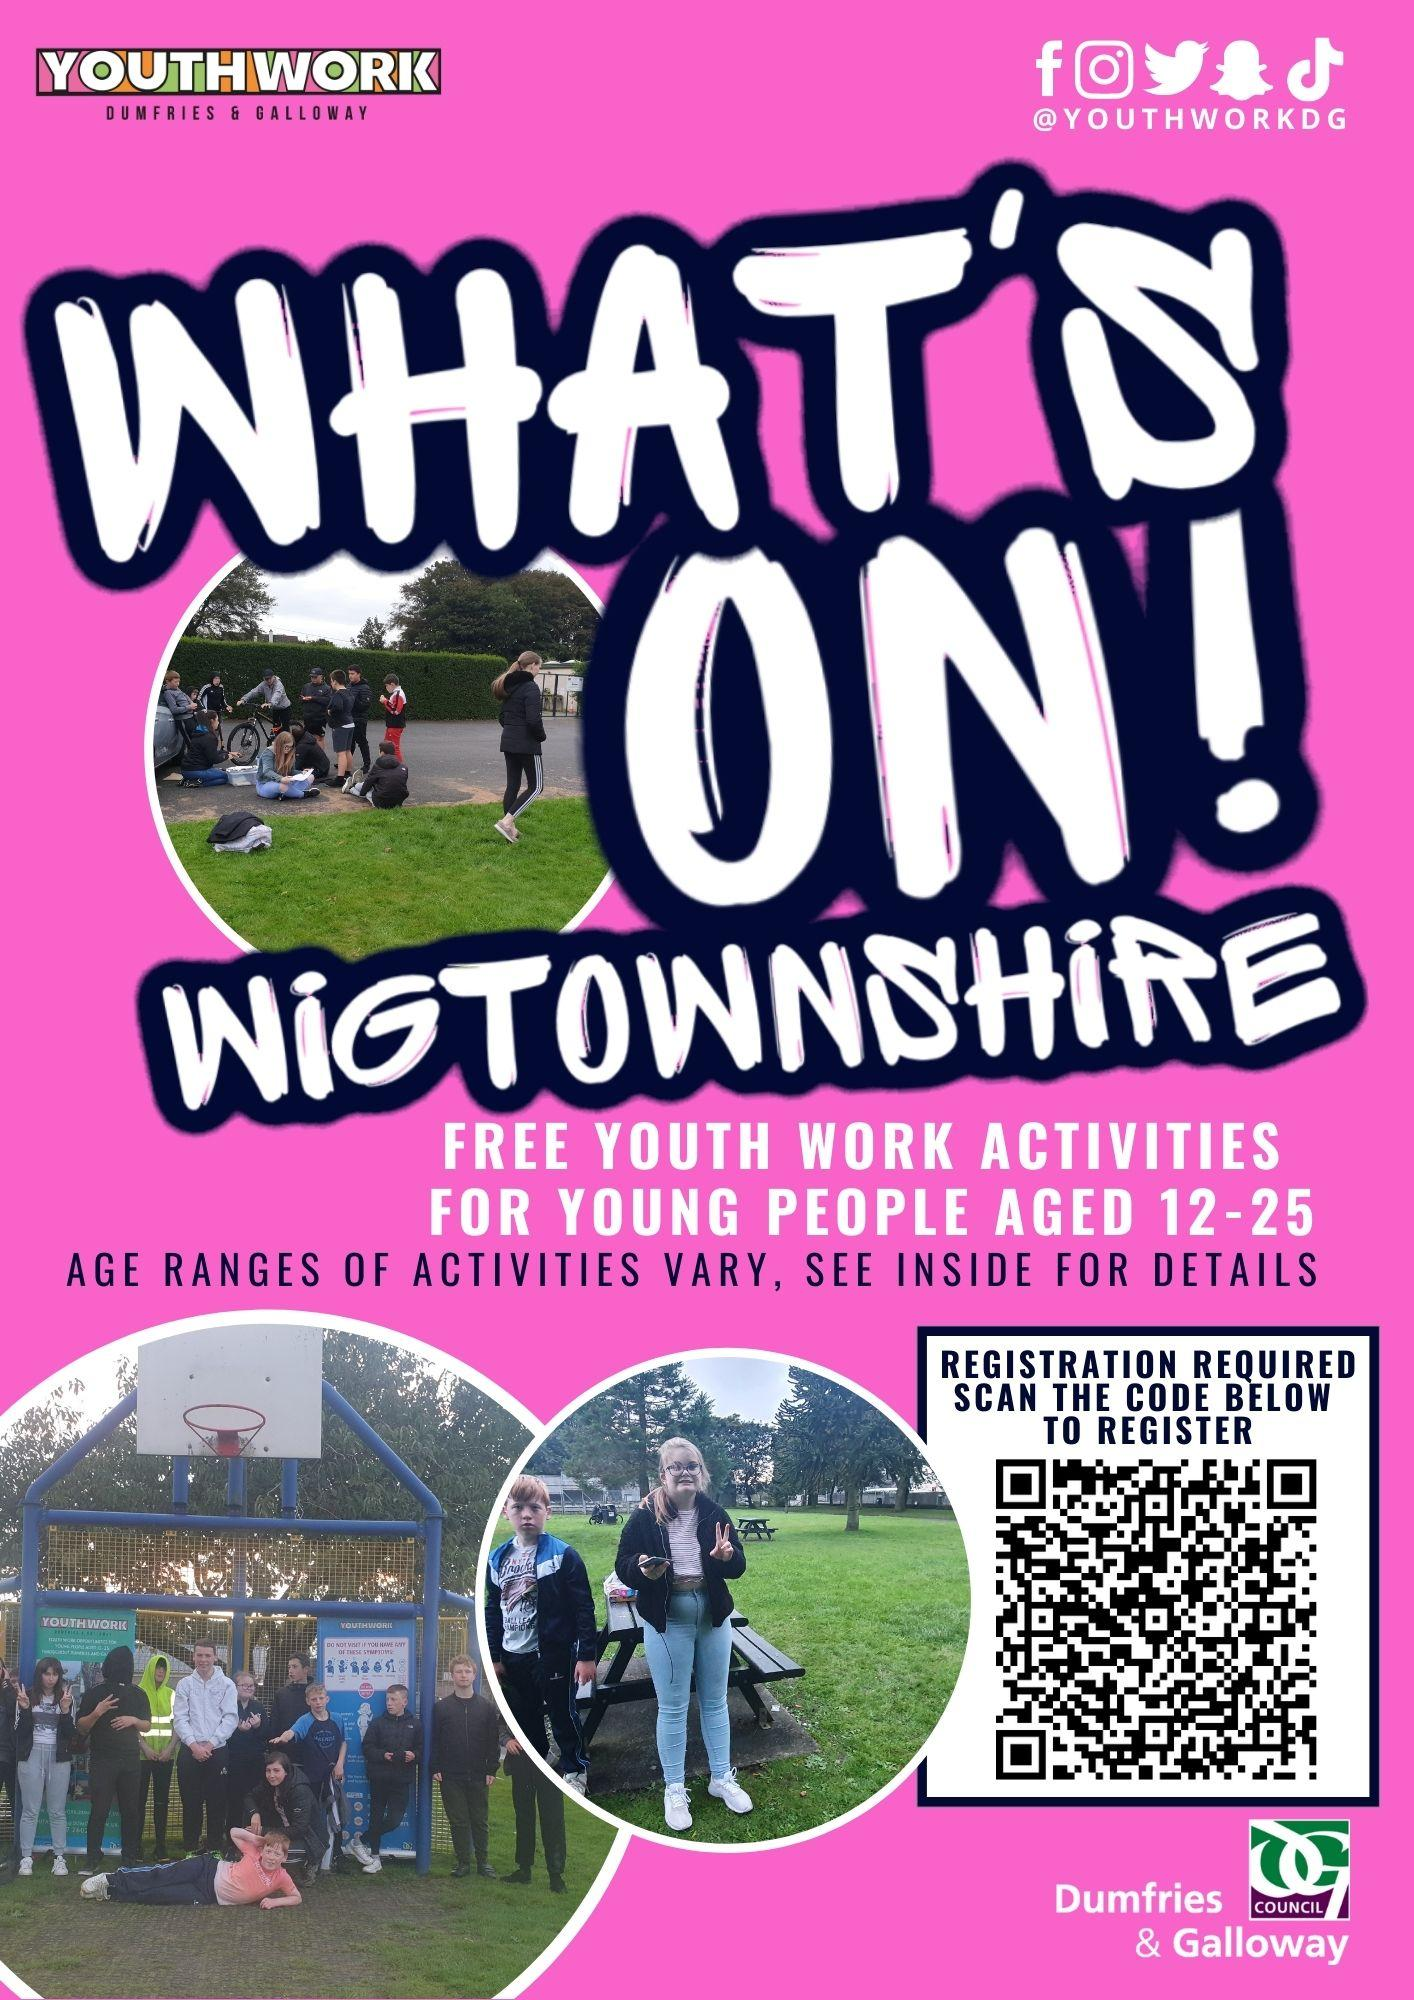 whats on wigtownshire 1